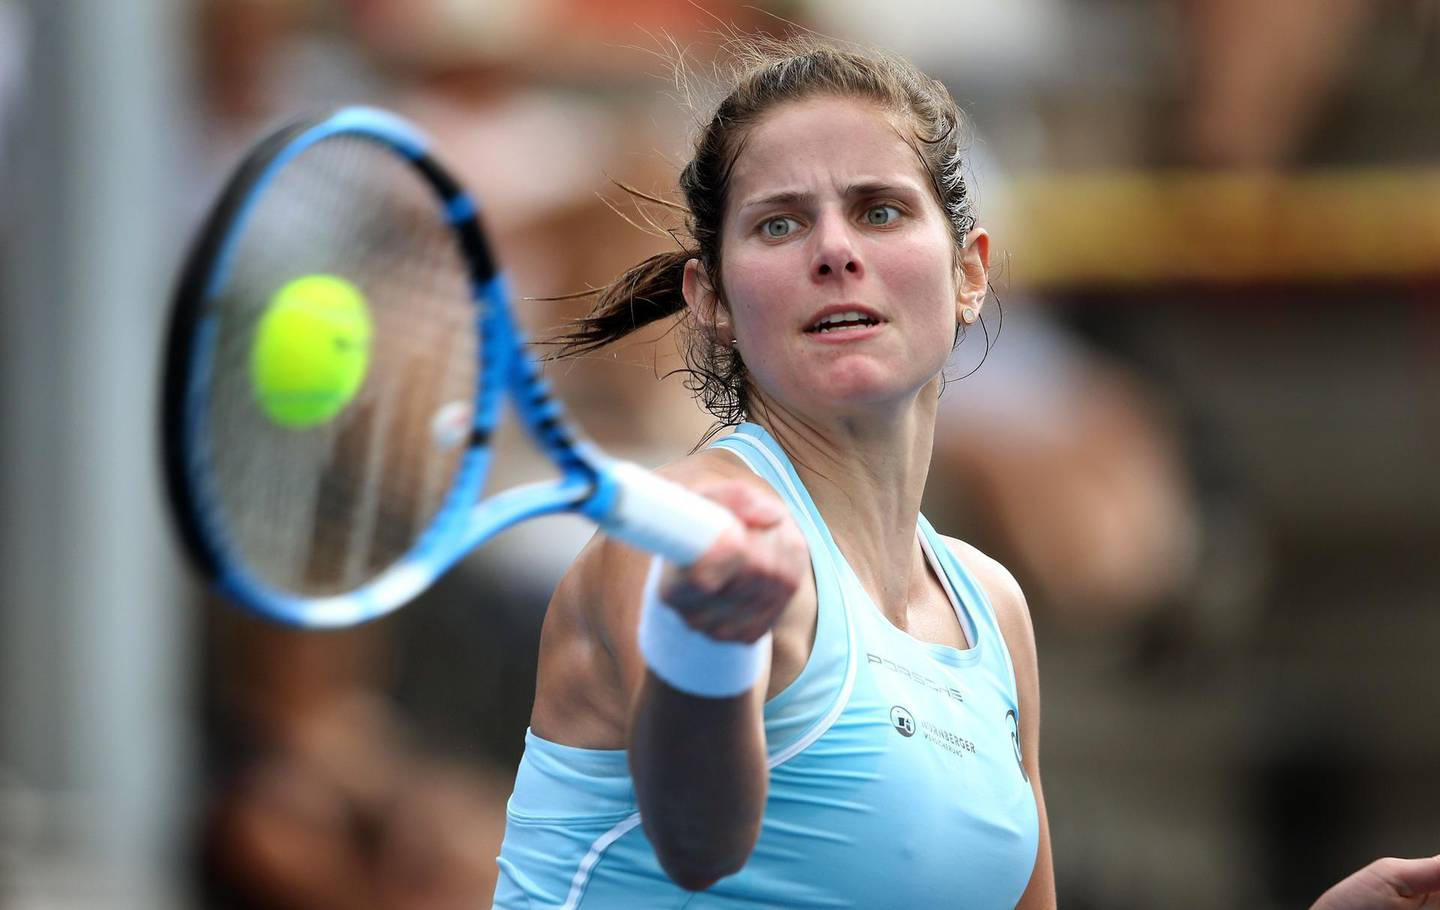 Julia Goerges of Germany hits a return during her women's semi-final match against Su-Wei Hsieh of Taiwan at the WTA Auckland Classic tennis tournament in Auckland on January 6, 2018. / AFP PHOTO / MICHAEL BRADLEY